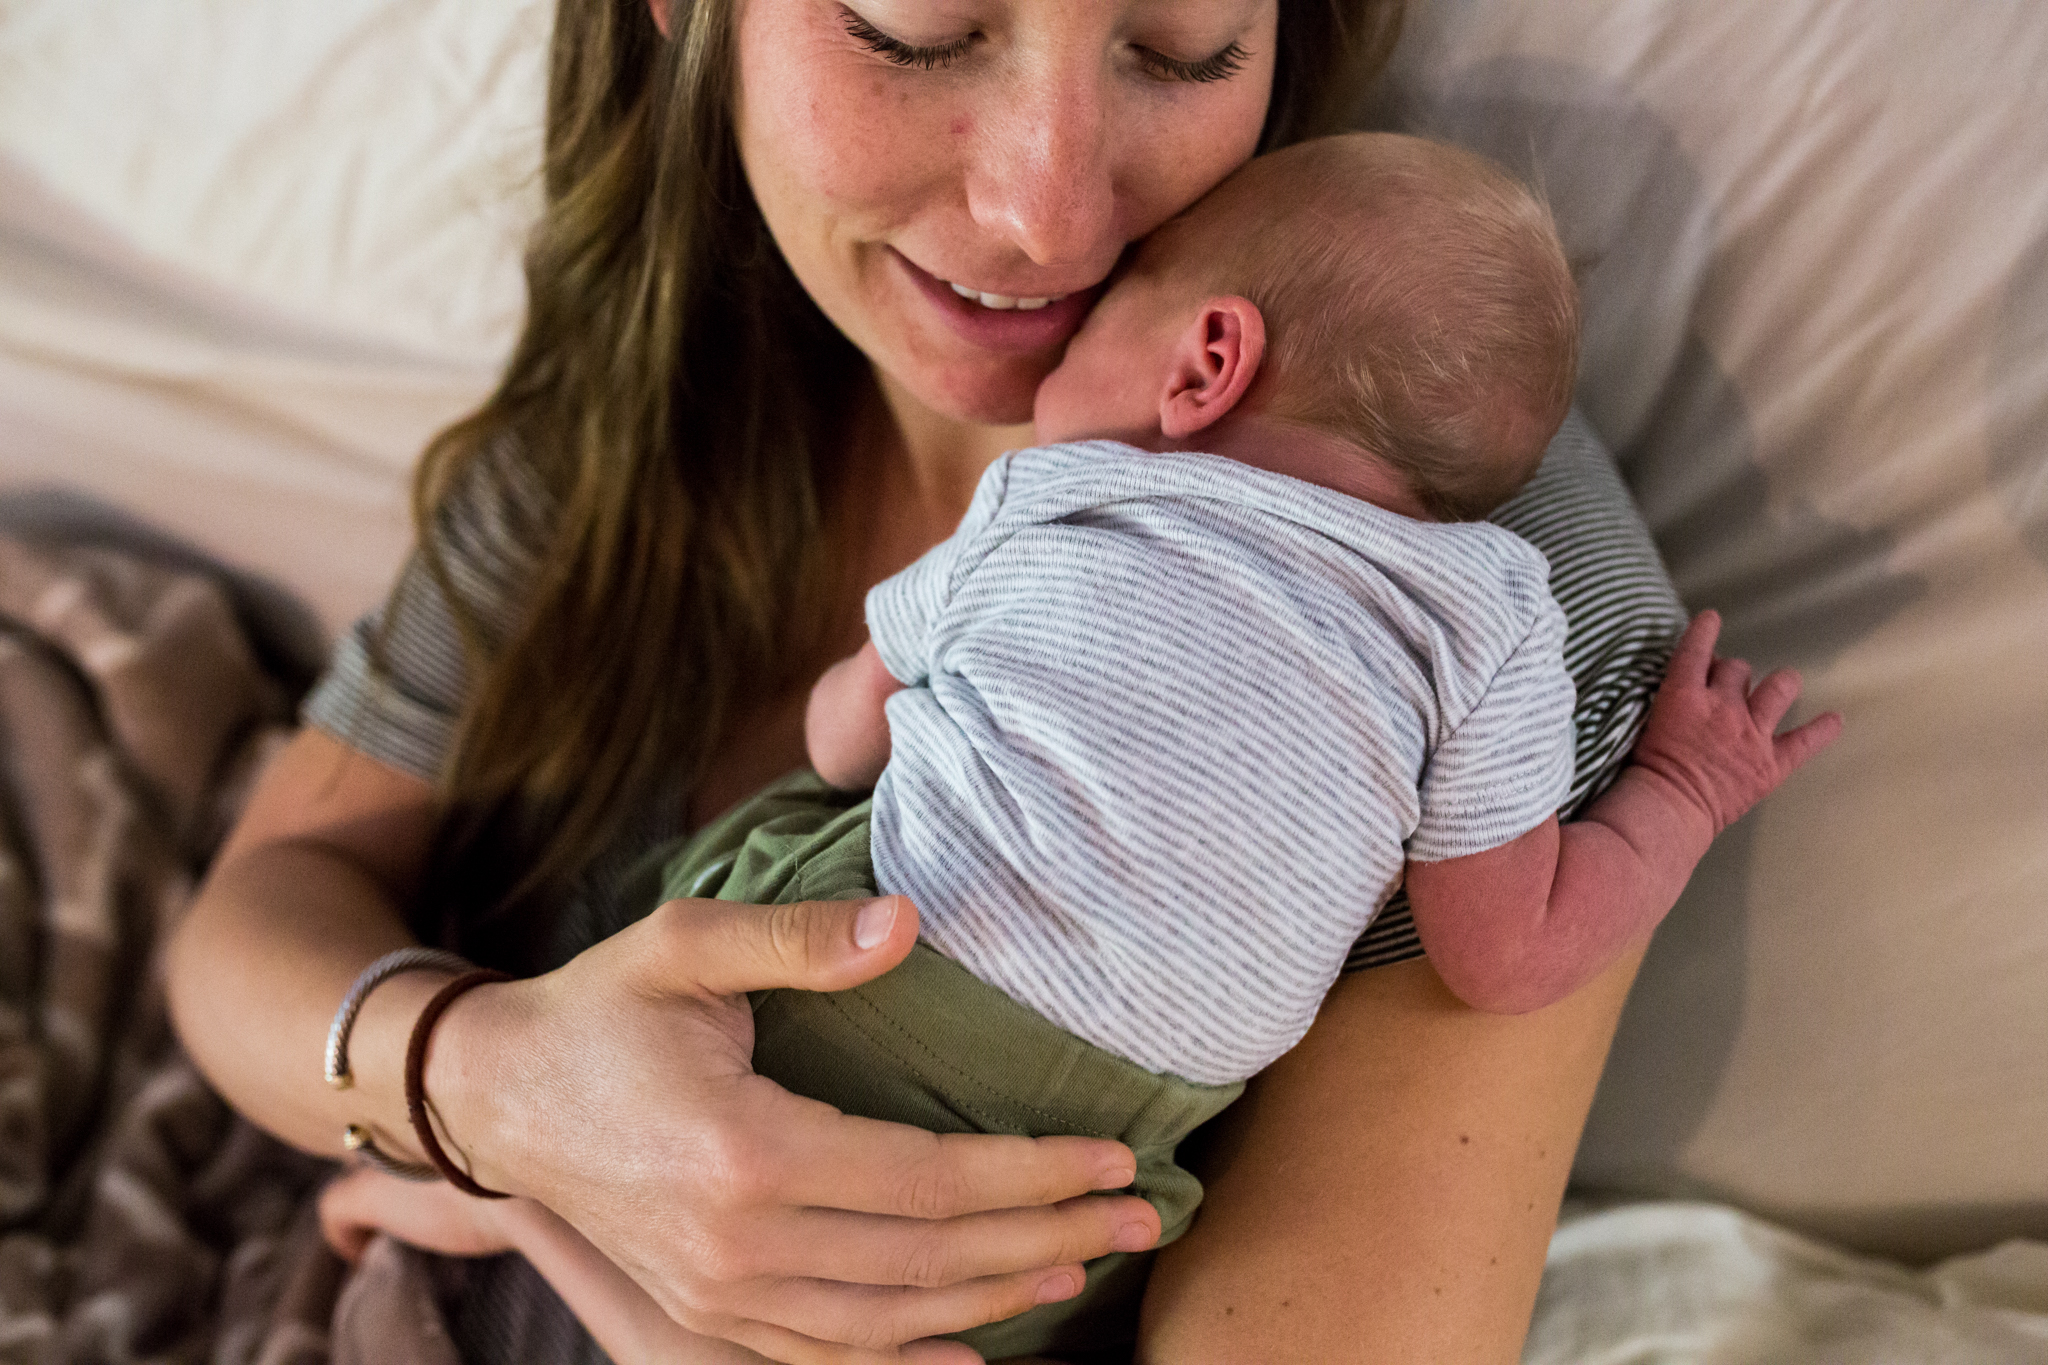 Lawren Rose Photography captures a very sweet and real moment of a mom cuddling her 3 day old son during an in-home newborn session in dallas texas